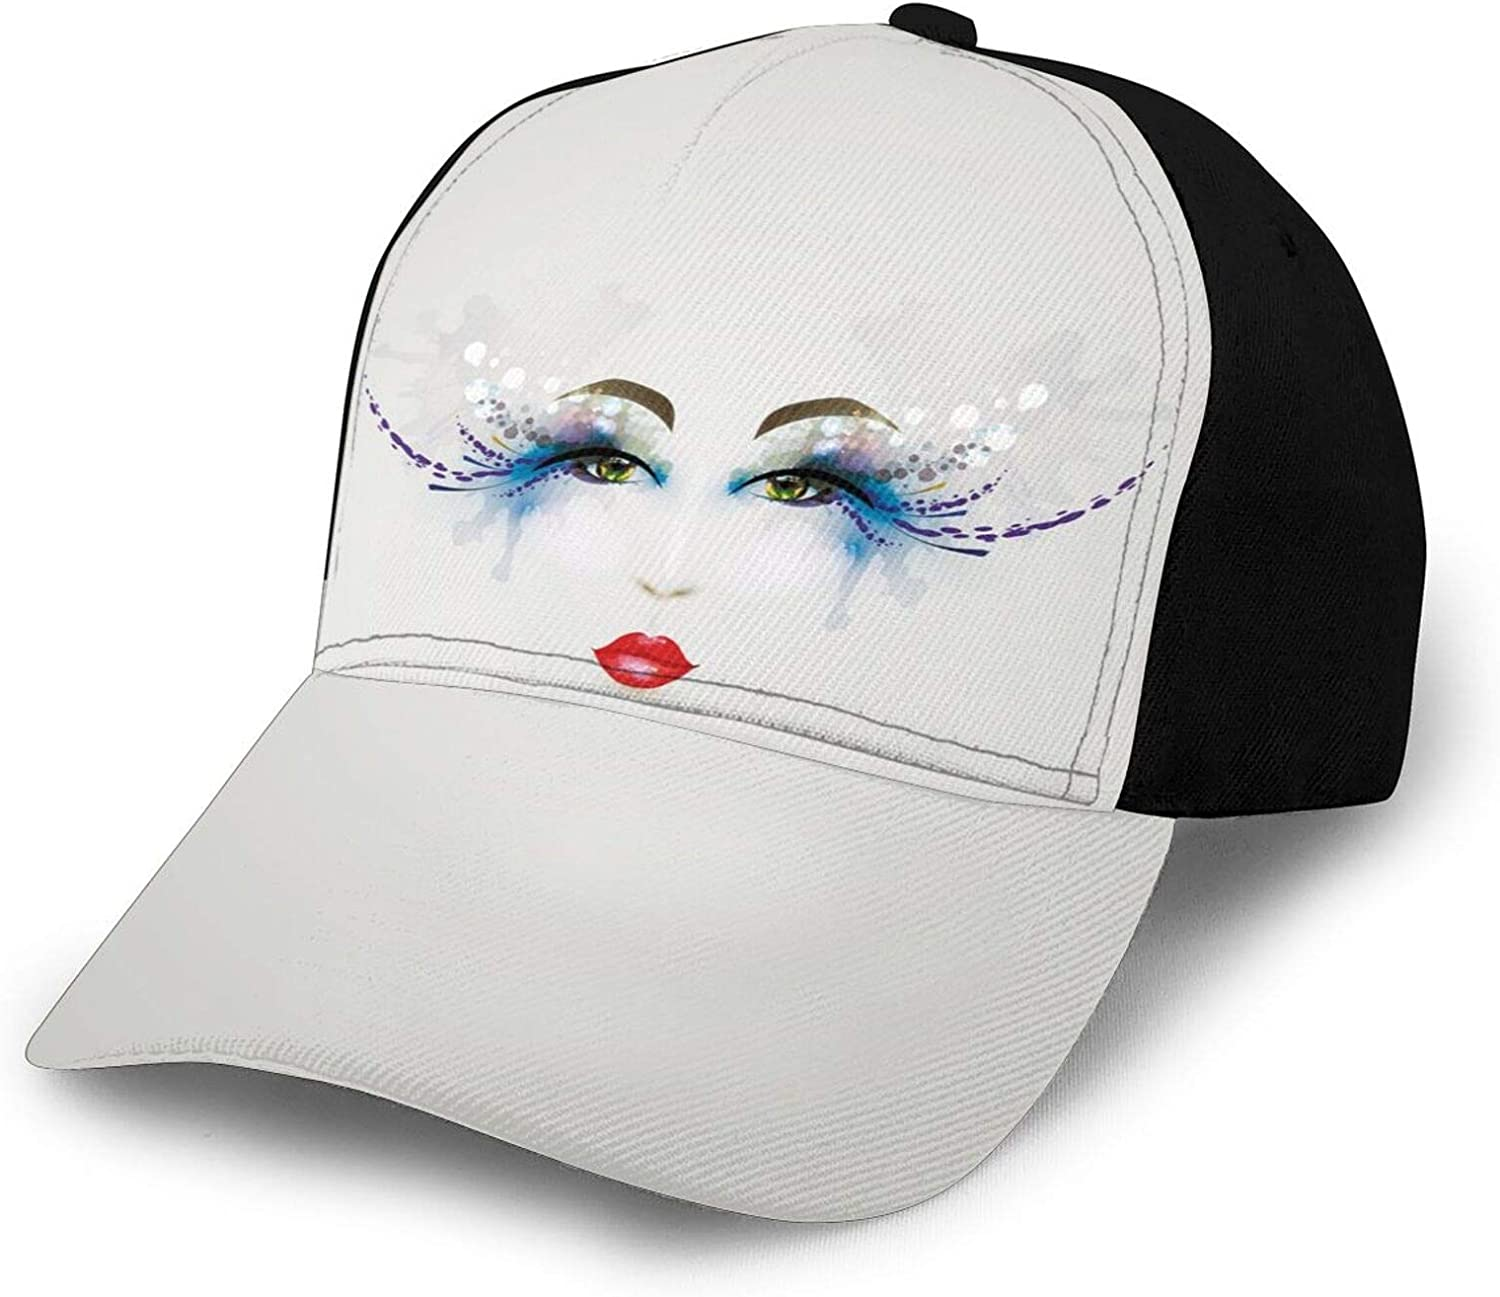 We OFFer at cheap prices Custom Baseball Hat Unisex Personalize Dad Max 40% OFF Cap Bill Gifts Curved